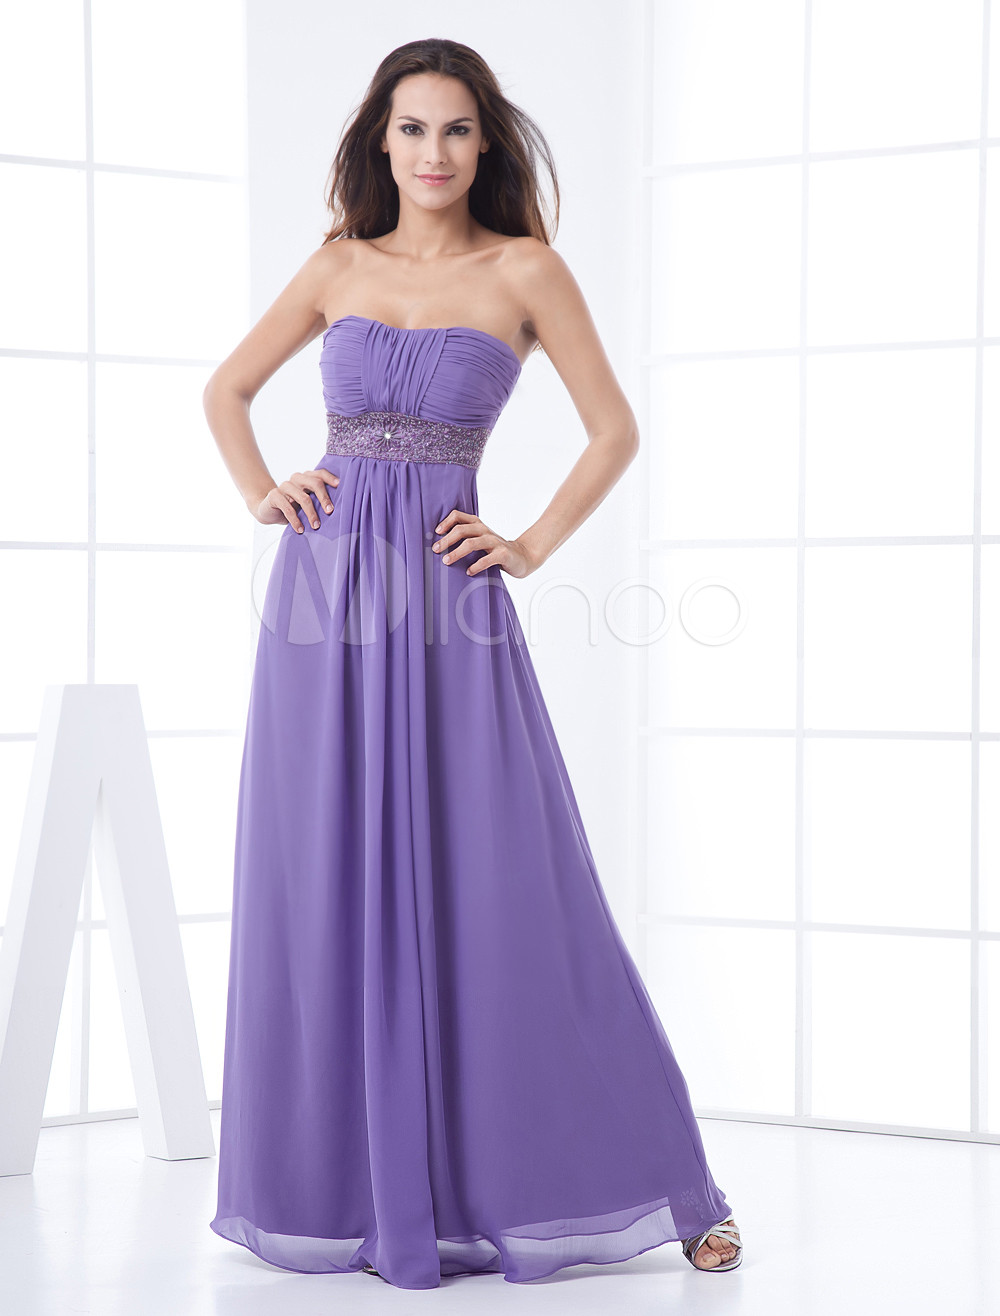 Lavender Strapless Empire Waist Beading Chiffon Bridesmaid Dress